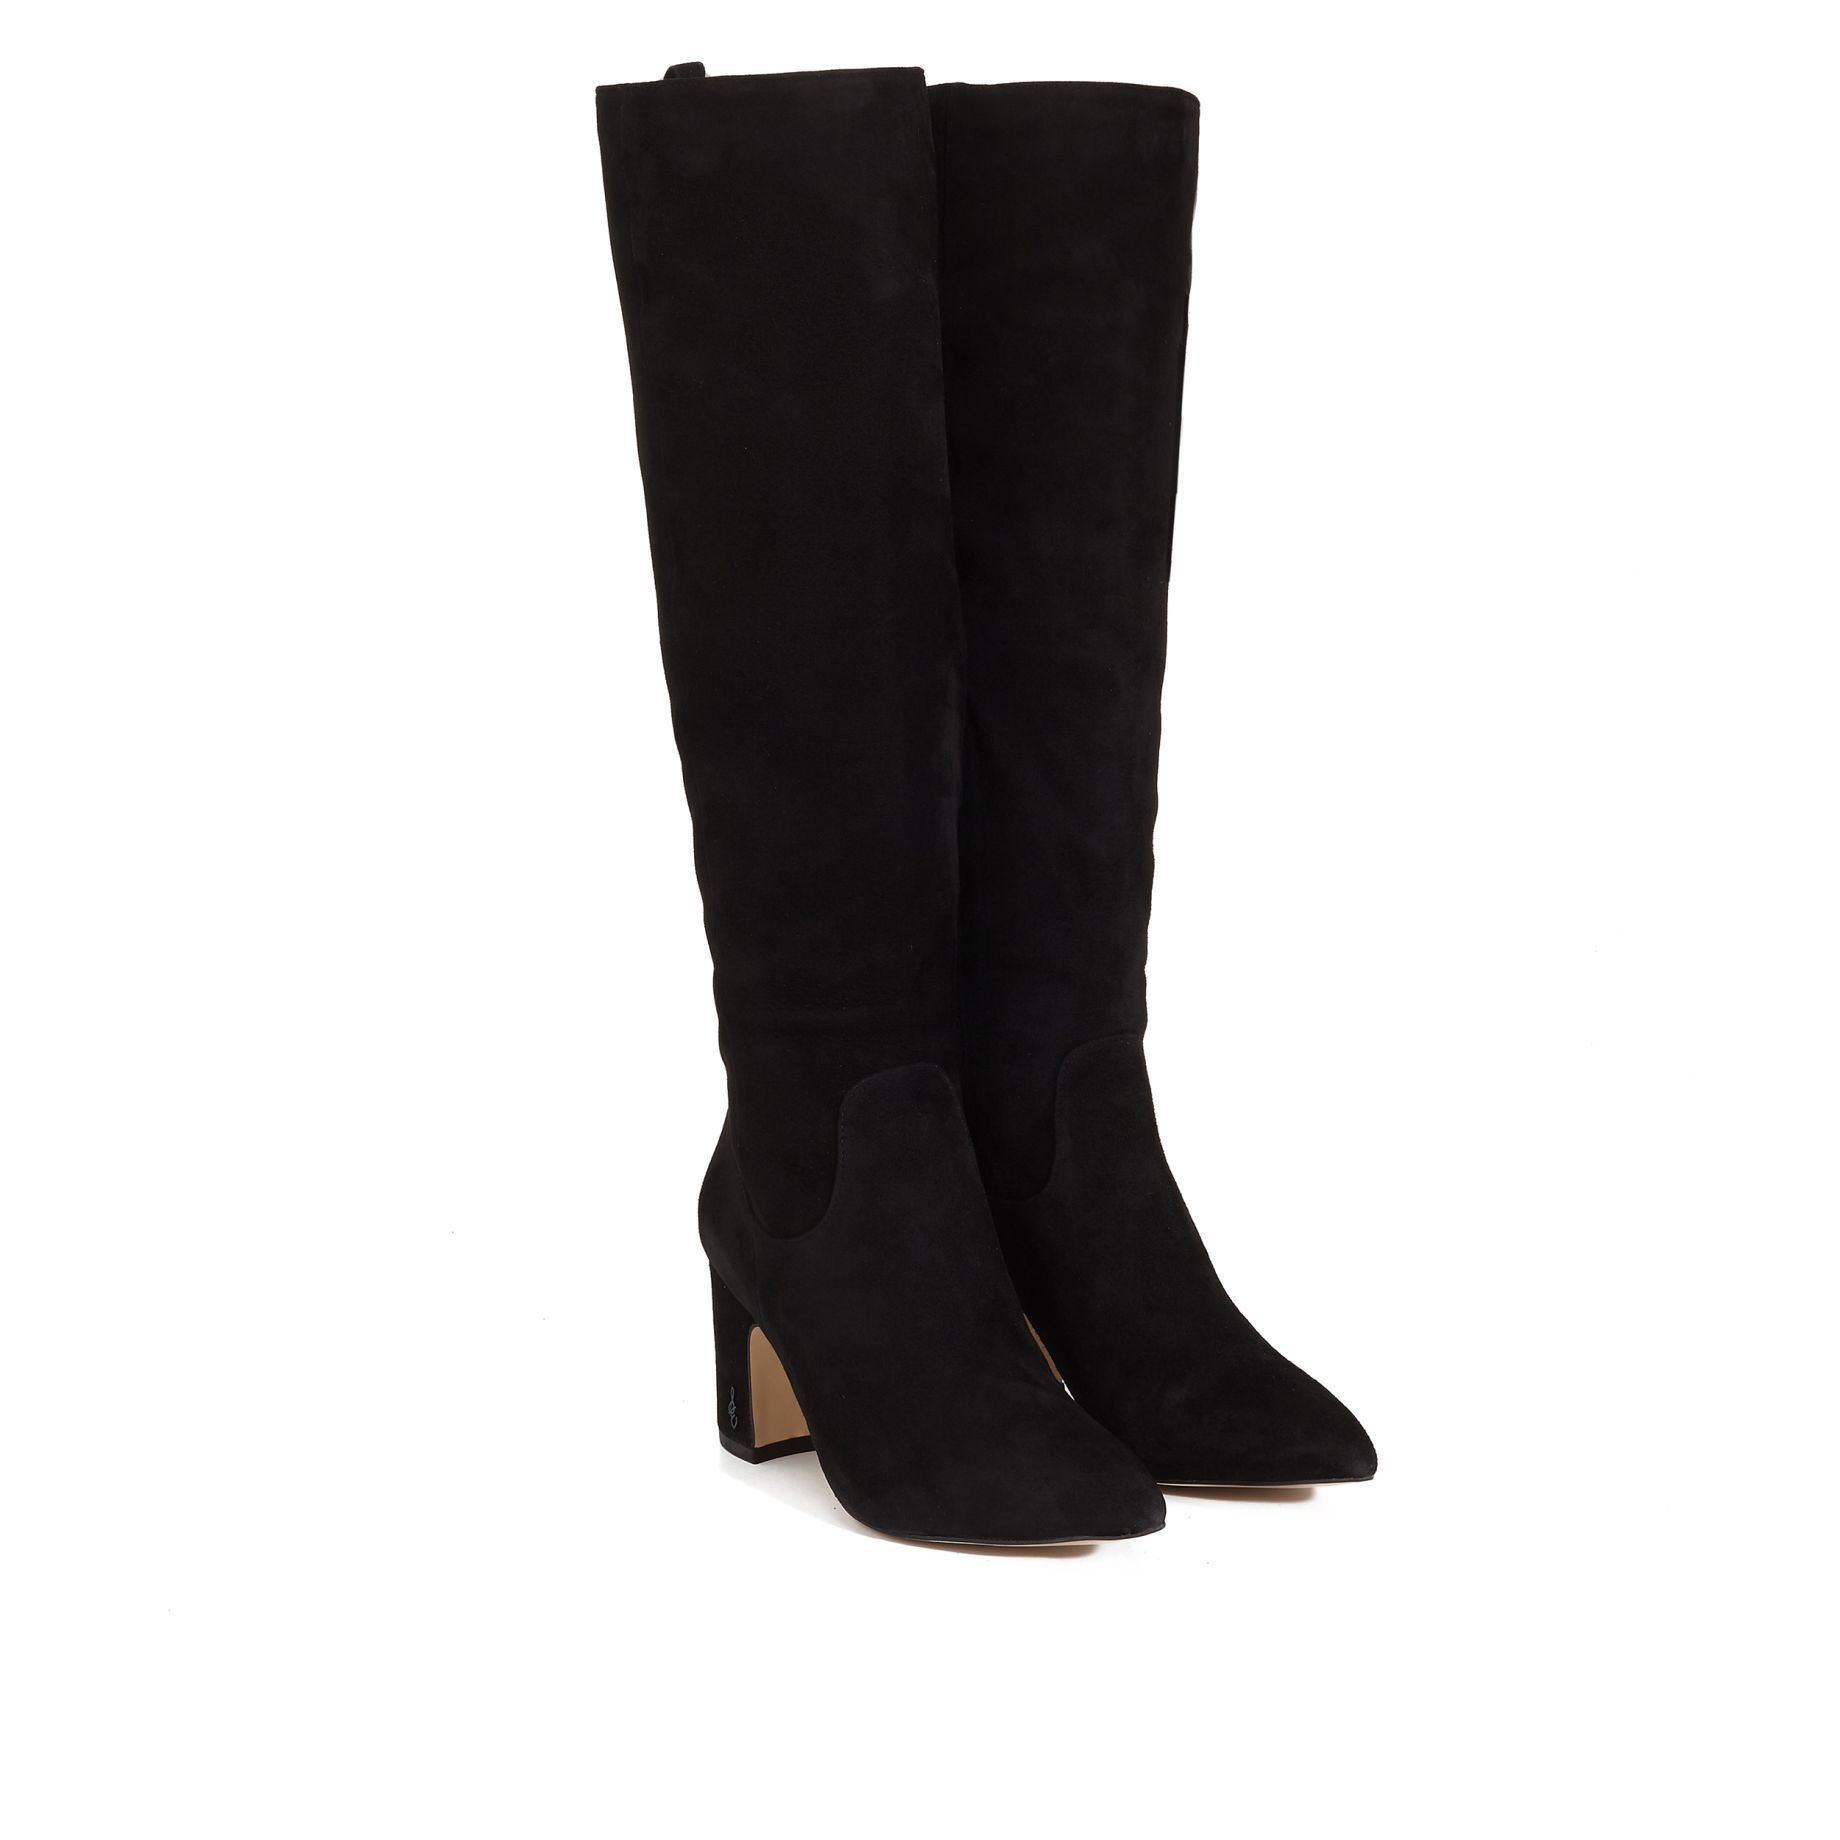 5f44800ade4abf Hai Knee High Boot by Sam Edelman - Black Suede - View 1